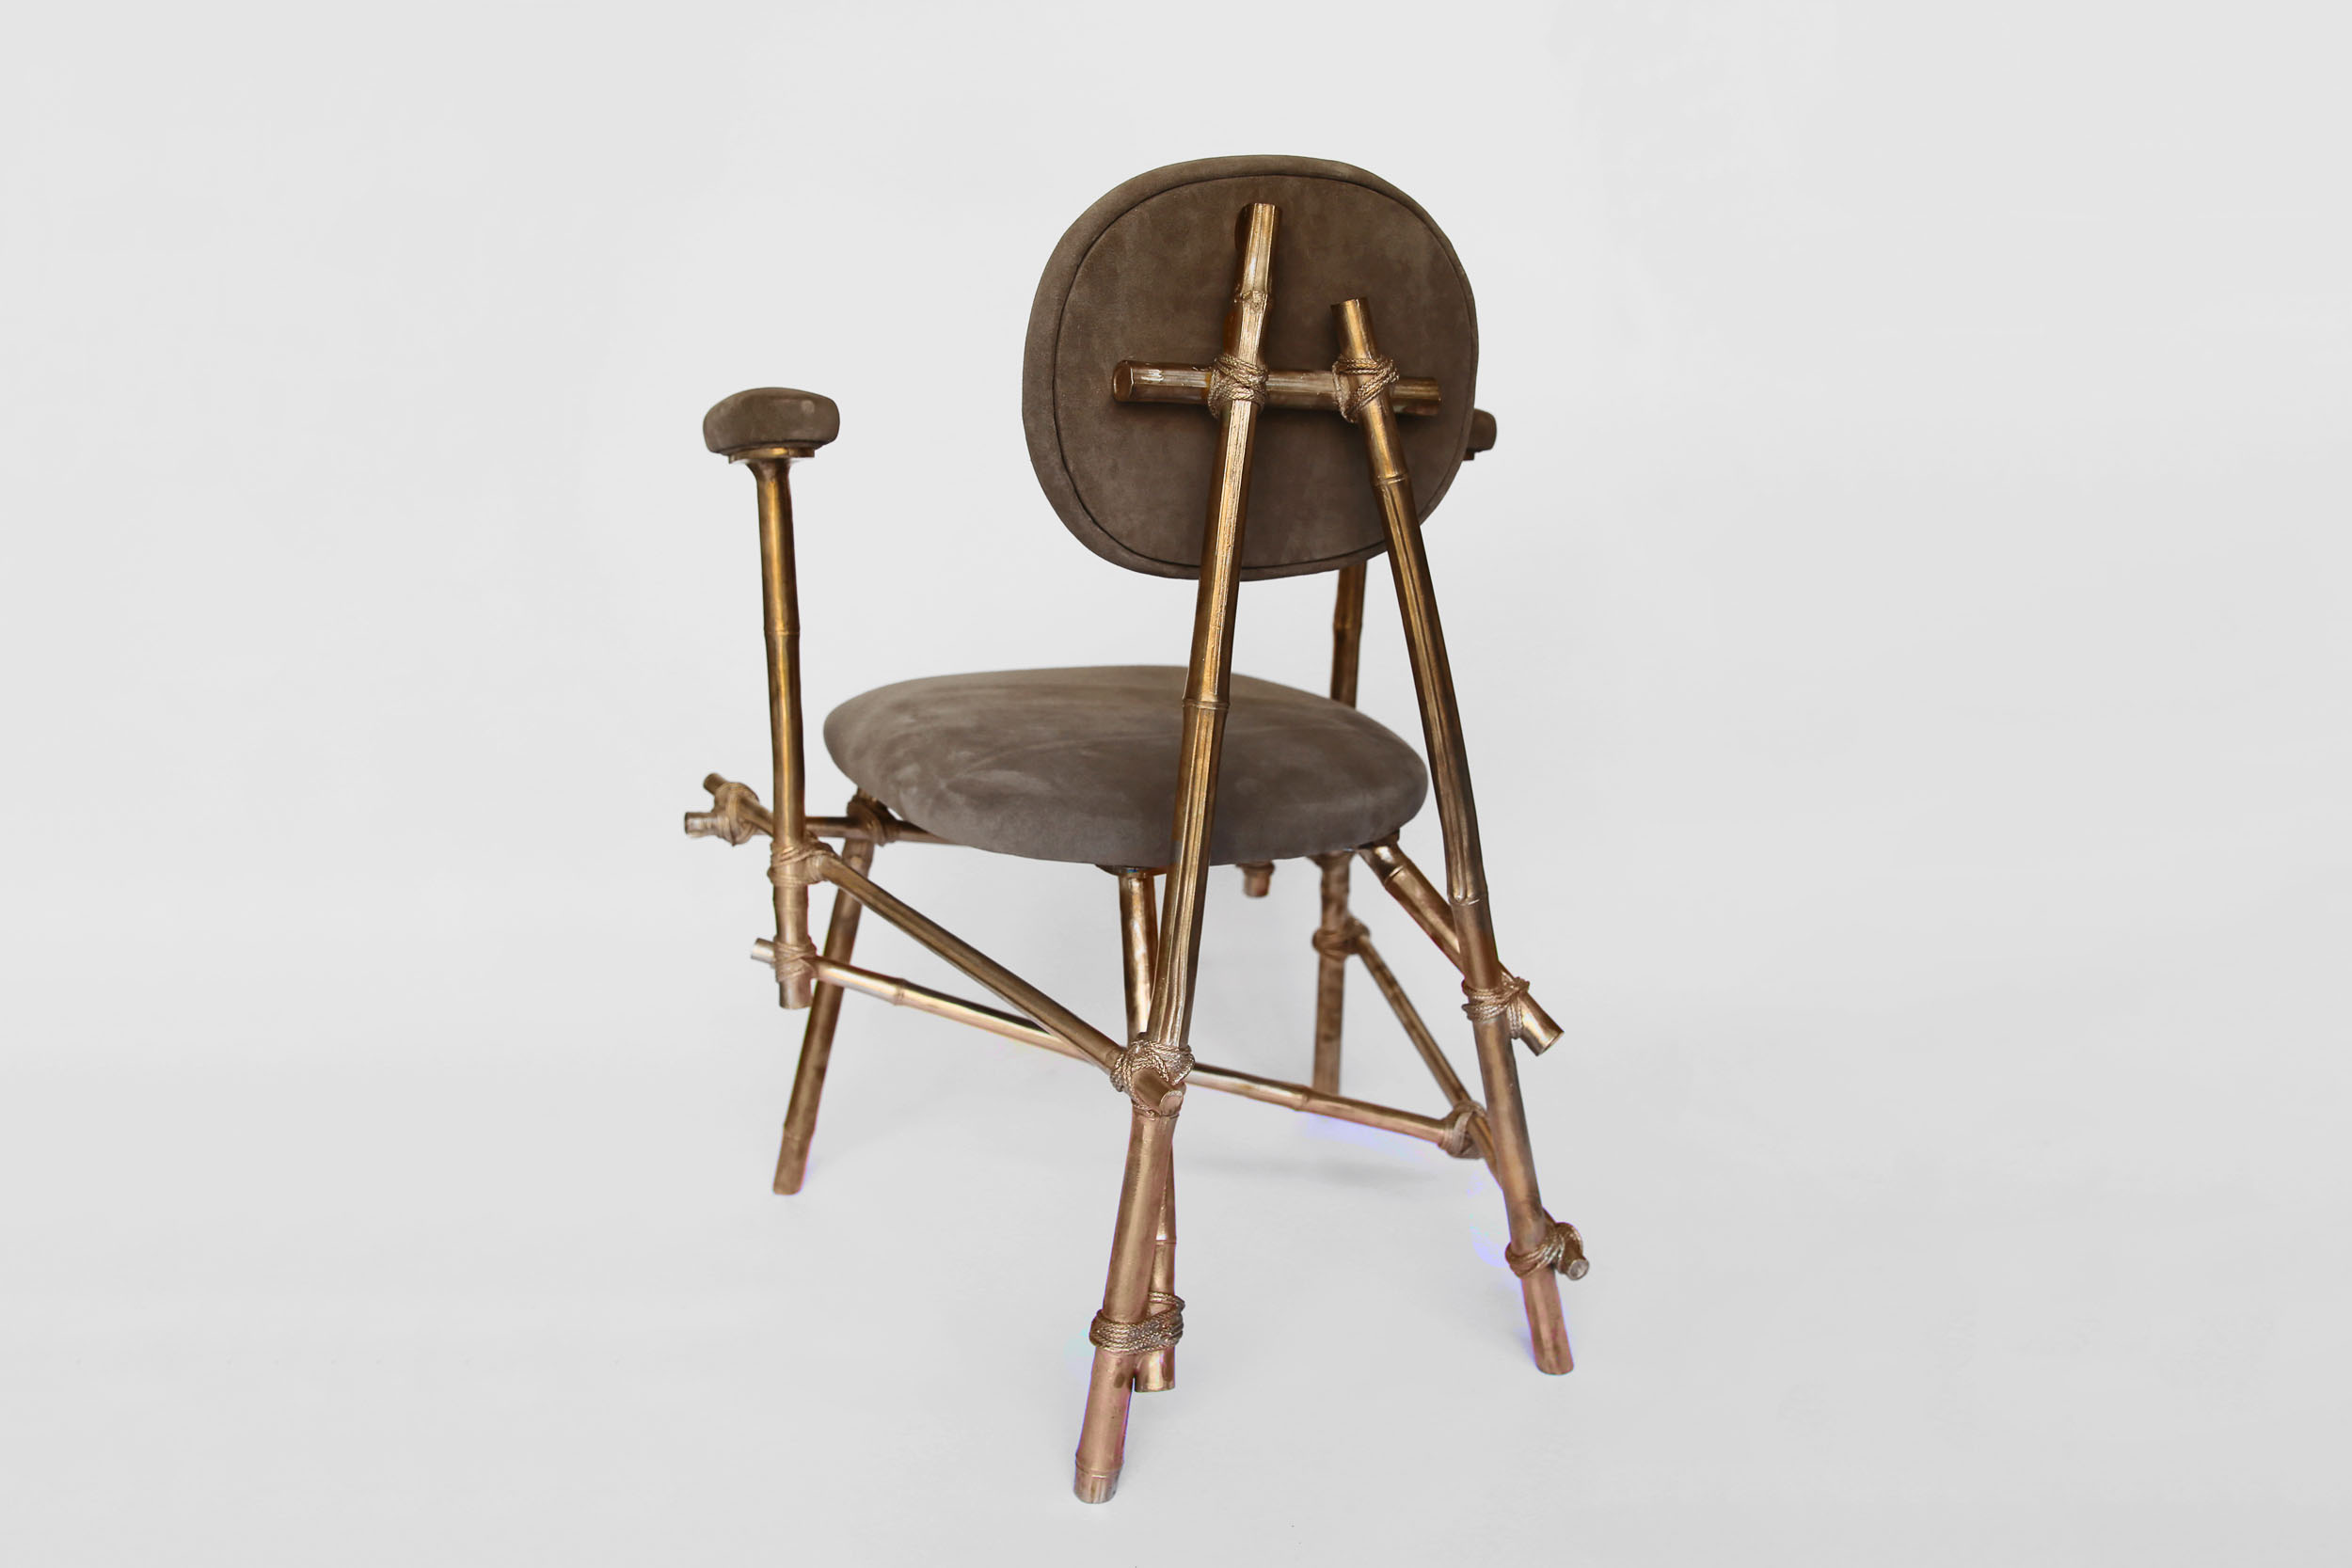 A back view of a Les French chair with bronze cast bamboo frame and leather upholstered seat and rests